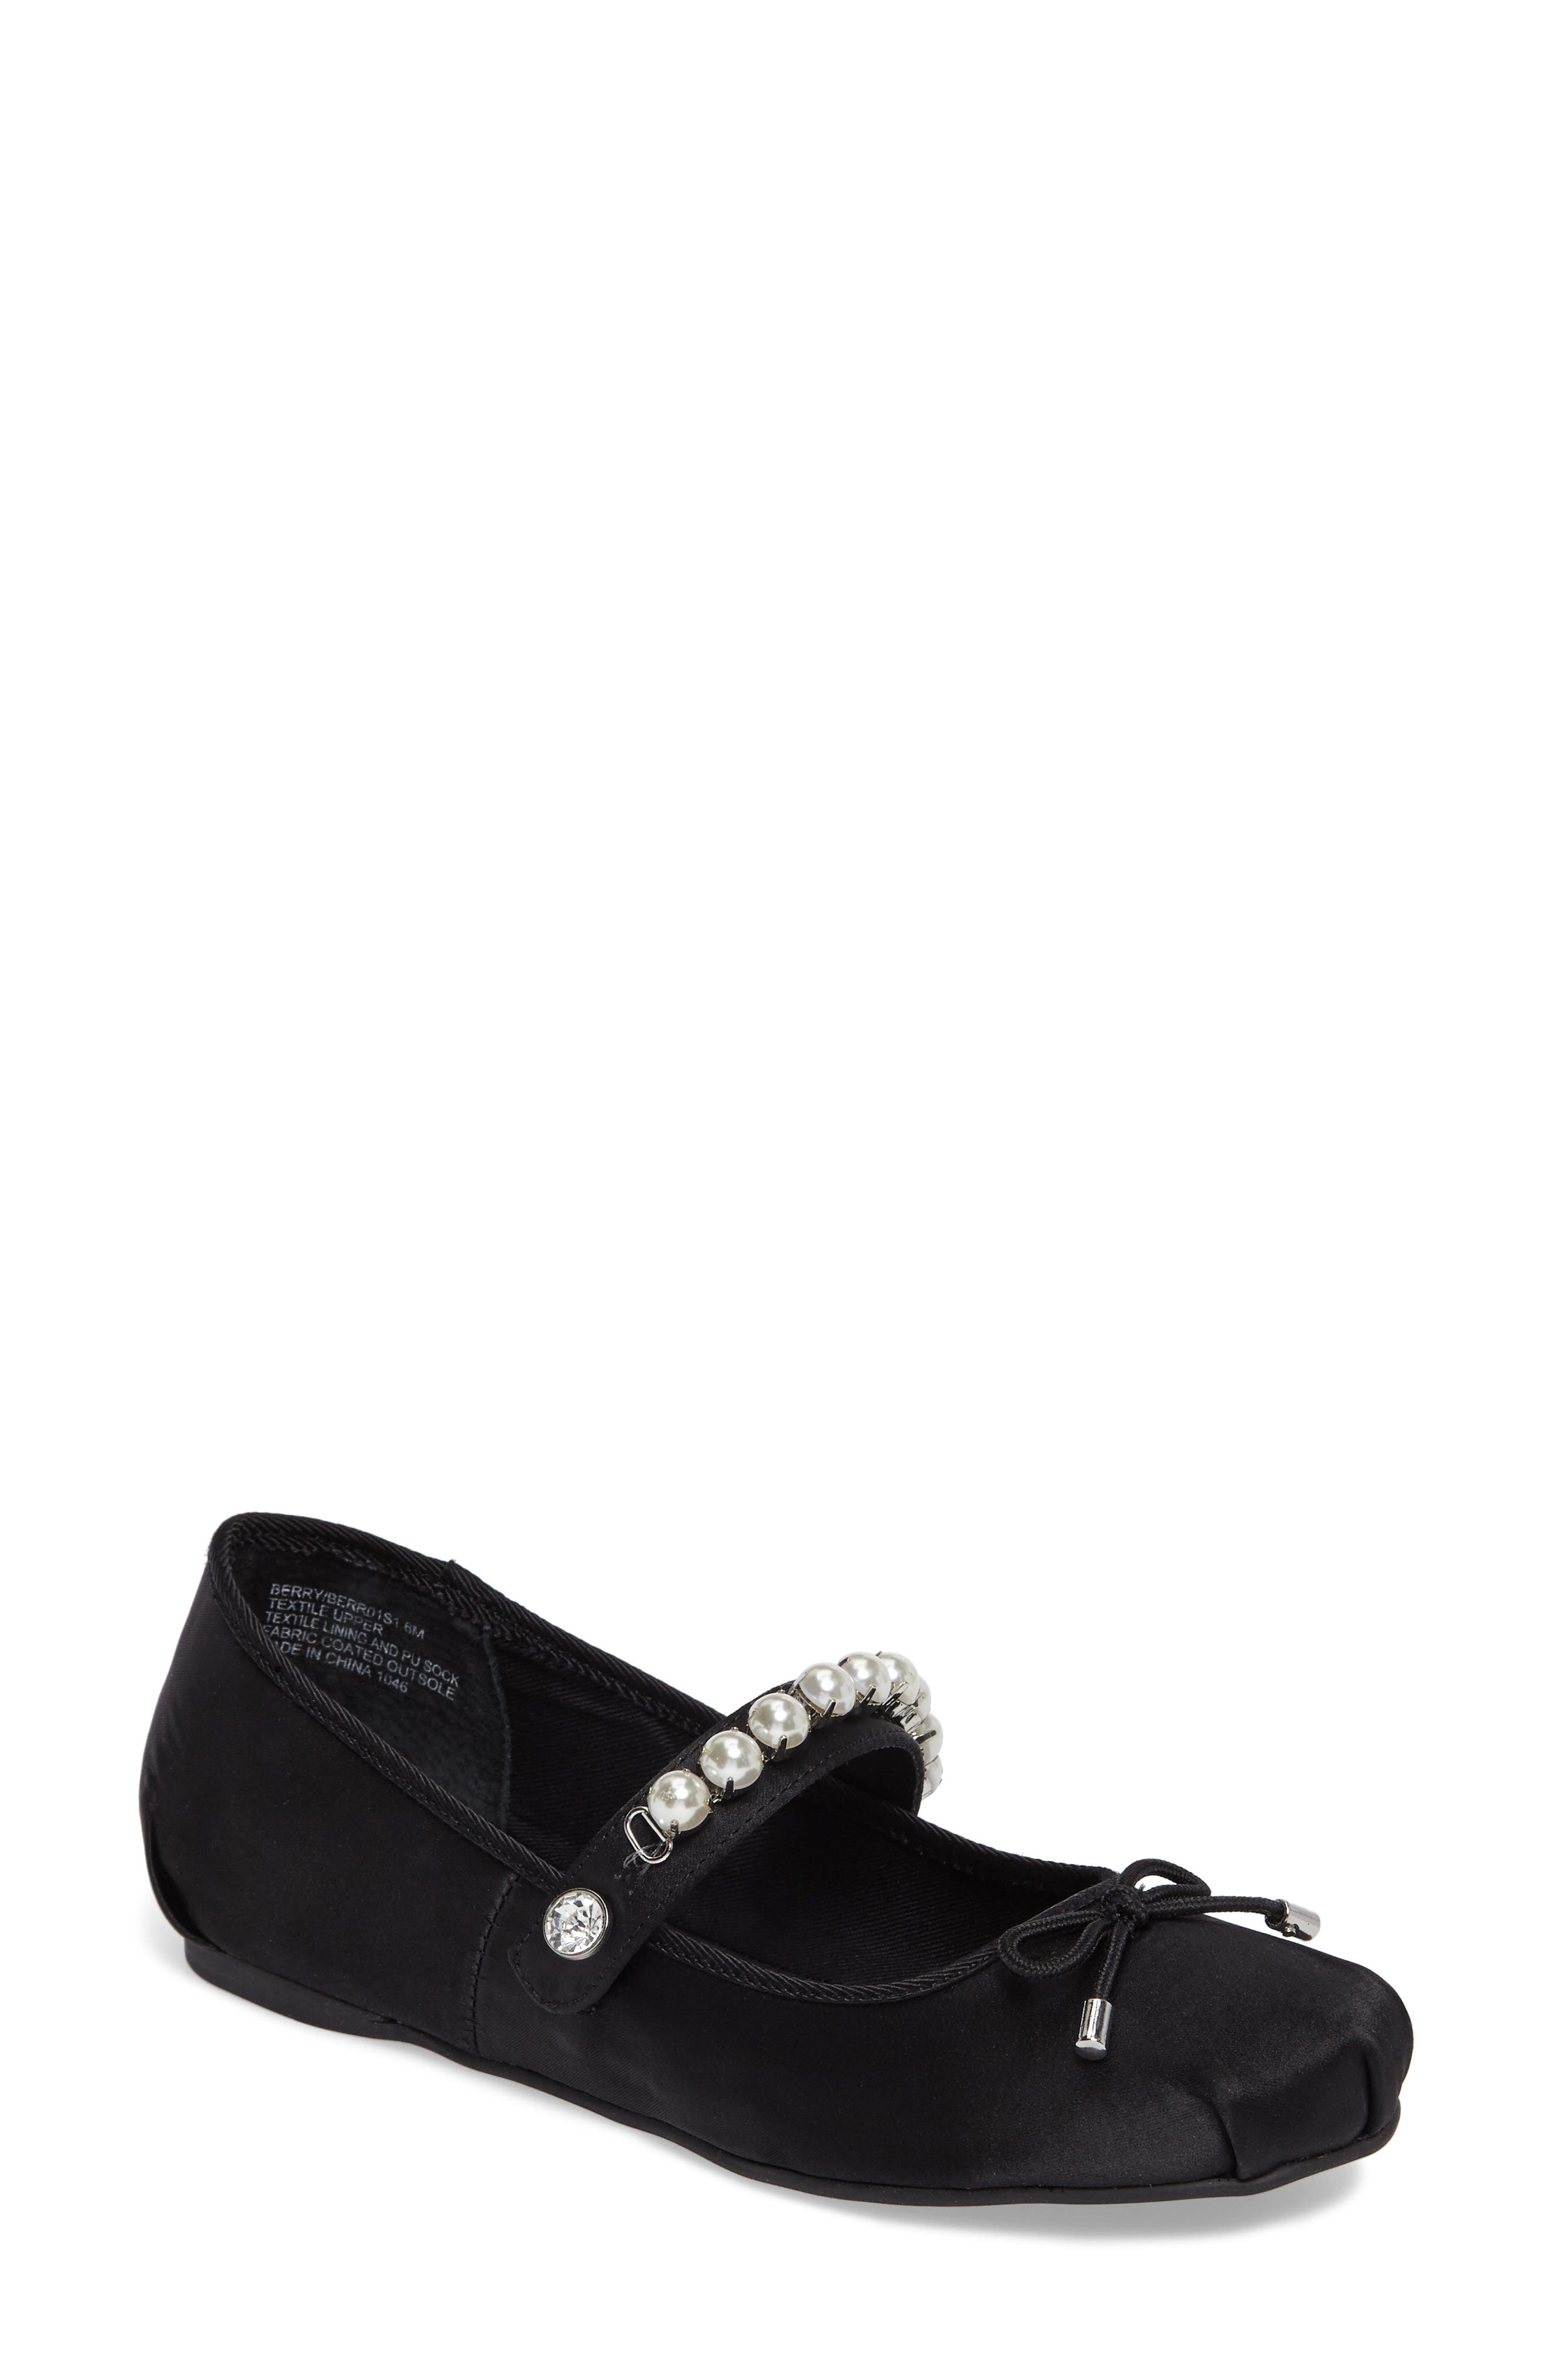 Steve Madden Berry Mary Jane Flat (Women)